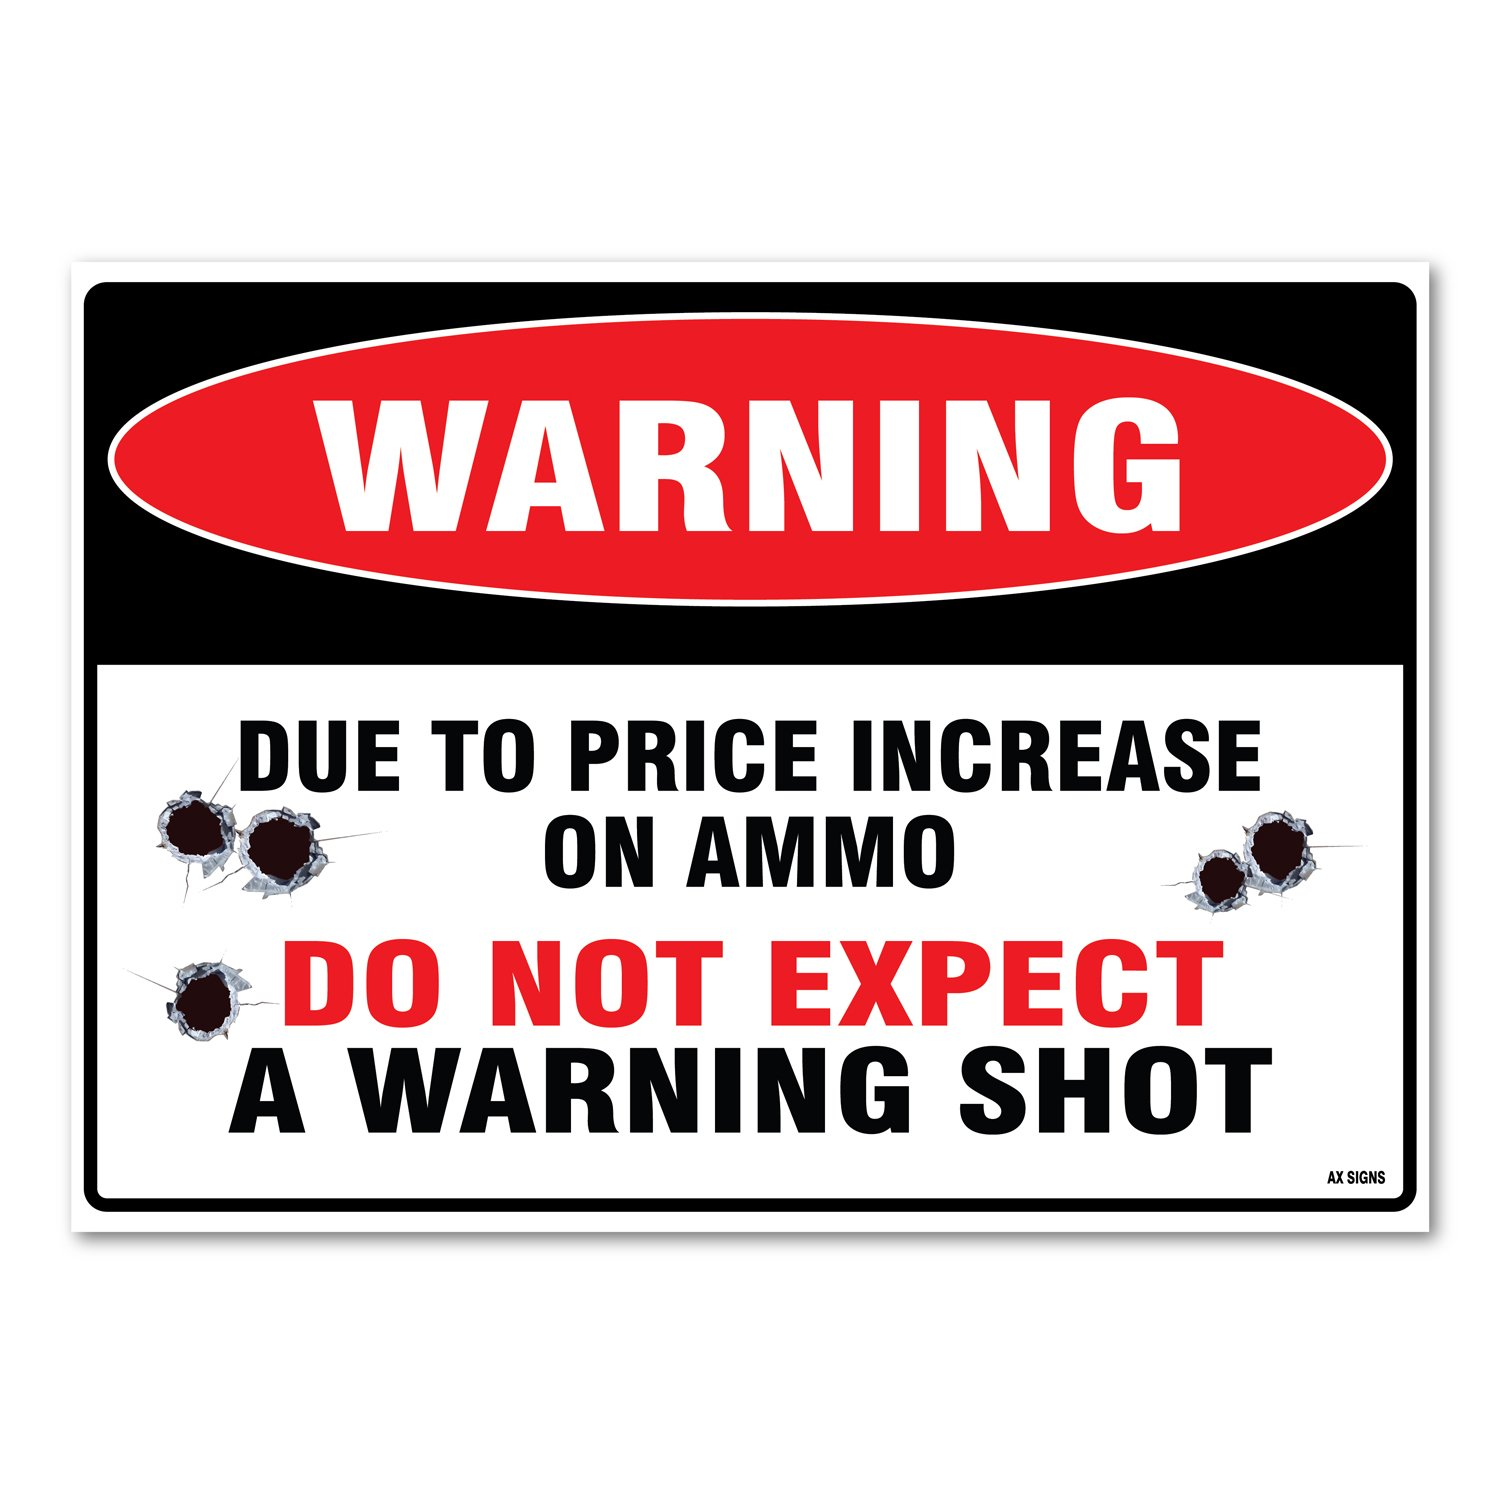 Rust Free Waterproof UV Protected Indoor and Outdoor Use 14 high x 10 inch wide Vinyl Sticker Warning Due to Price Increase on Ammo Do Not Expect a Warning Shot Self Adhesive